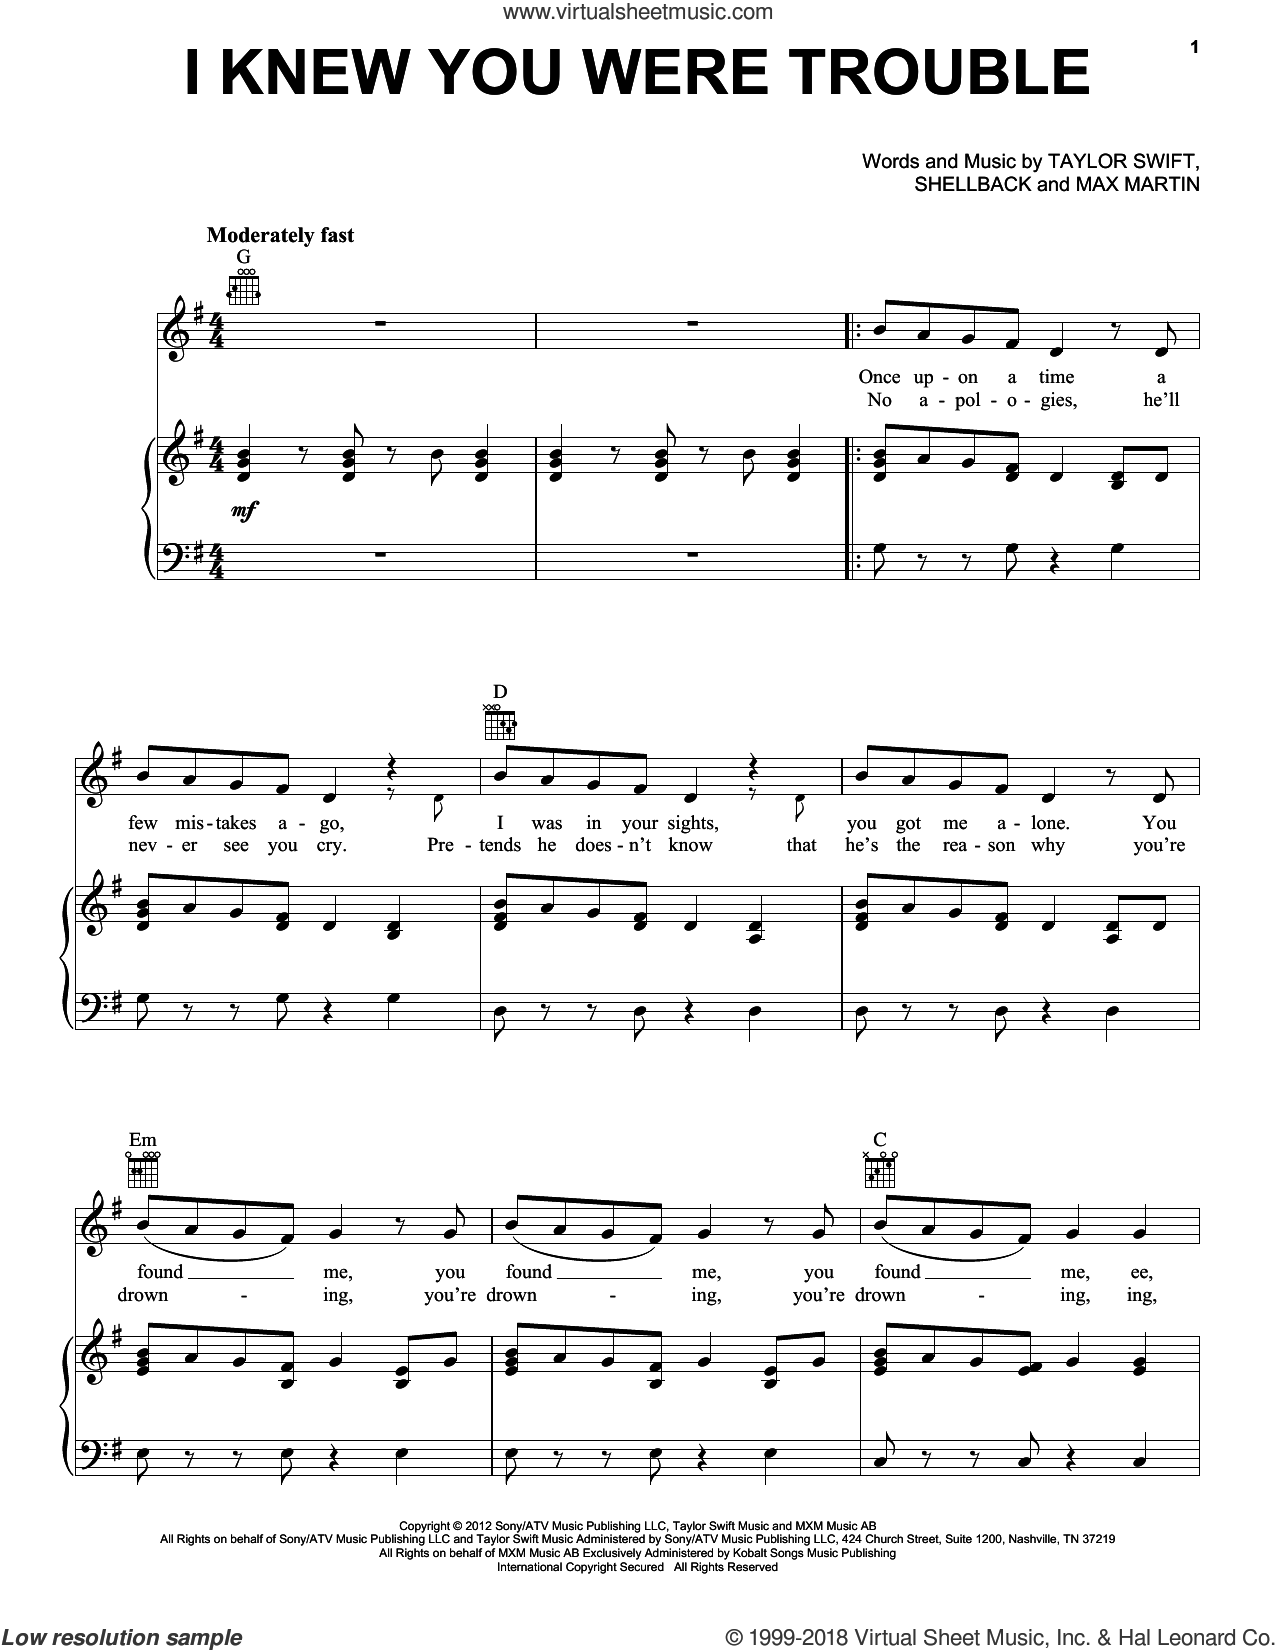 I Knew You Were Trouble sheet music for voice, piano or guitar by Shellback